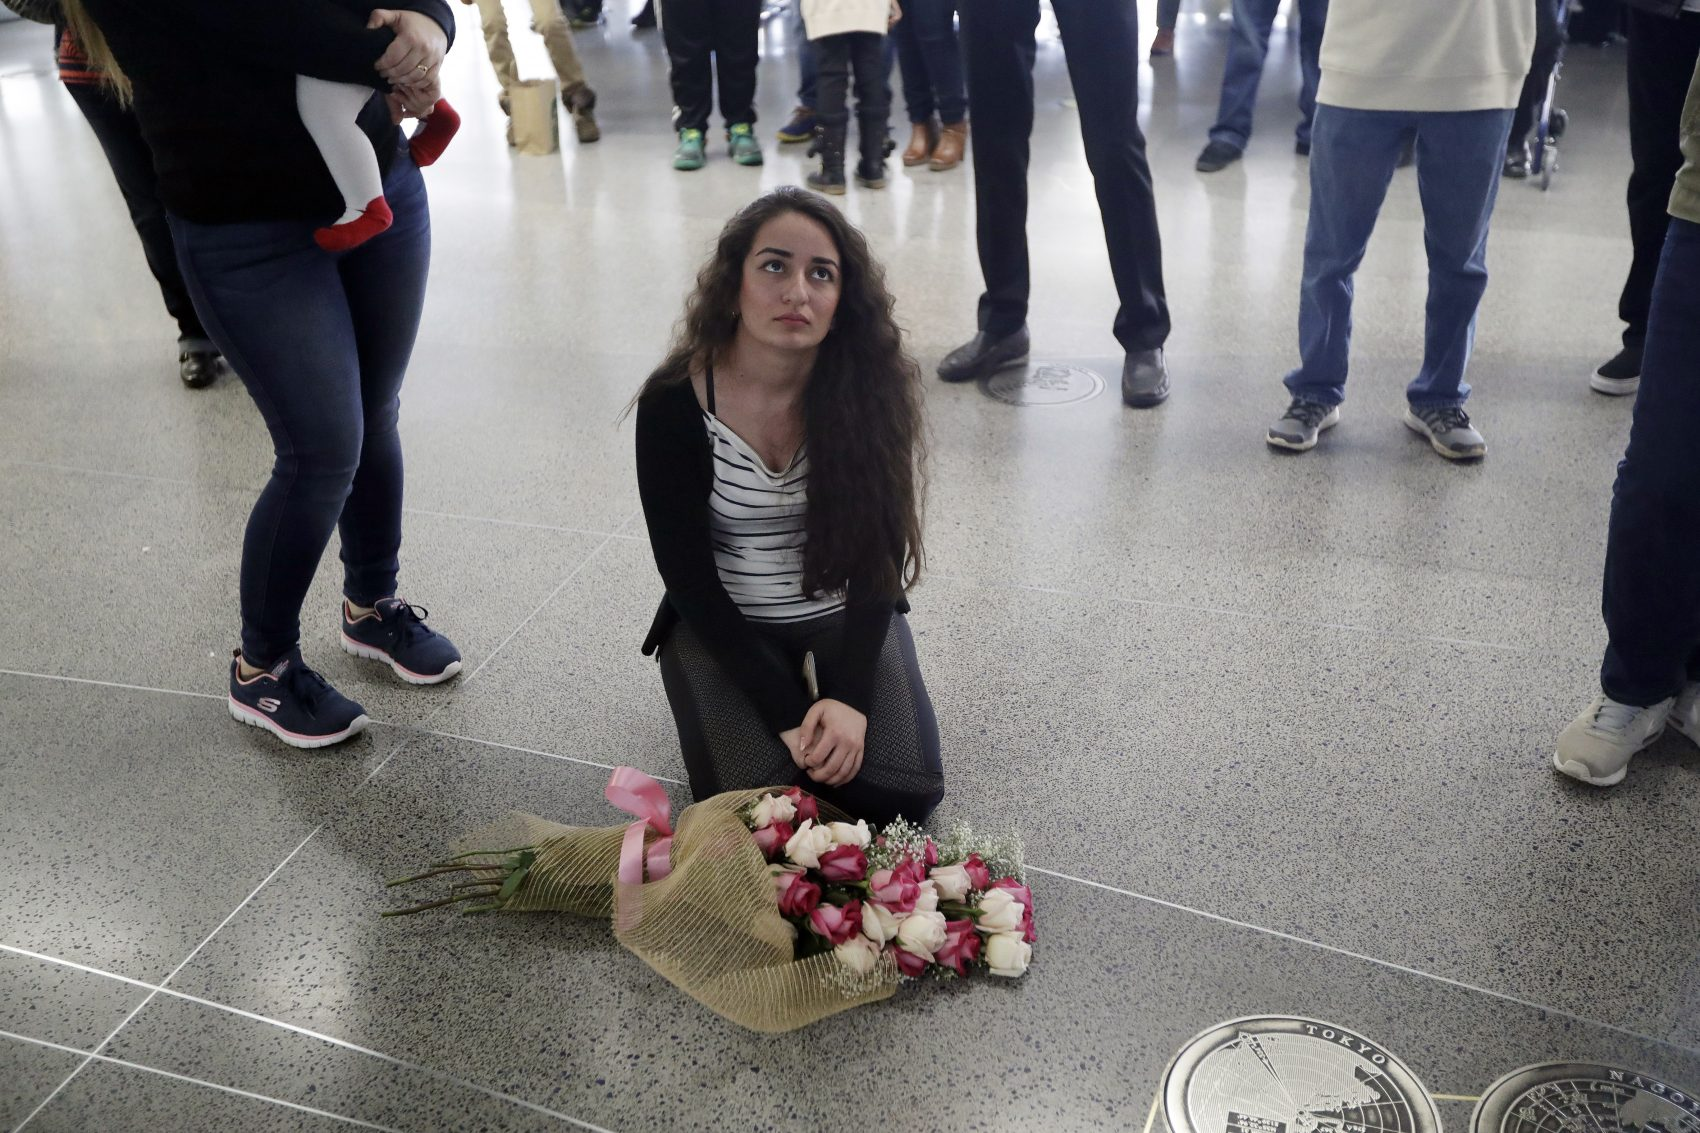 The crisis over President Trump's immigration ban, writes John Tirman, has emerged from its unconstitutionality as well as from the way the government has flaunted court orders blocking parts of the ban. Pictured: Reem Alrubaye, of Fremont, Calif., places flowers on the floor as she waits for her mother Mason Jadoaa to return from a visit to Baghdad, Iraq, at San Francisco International Airport, Monday, Jan. 30, 2017. (Marcio Jose Sanchez/AP)